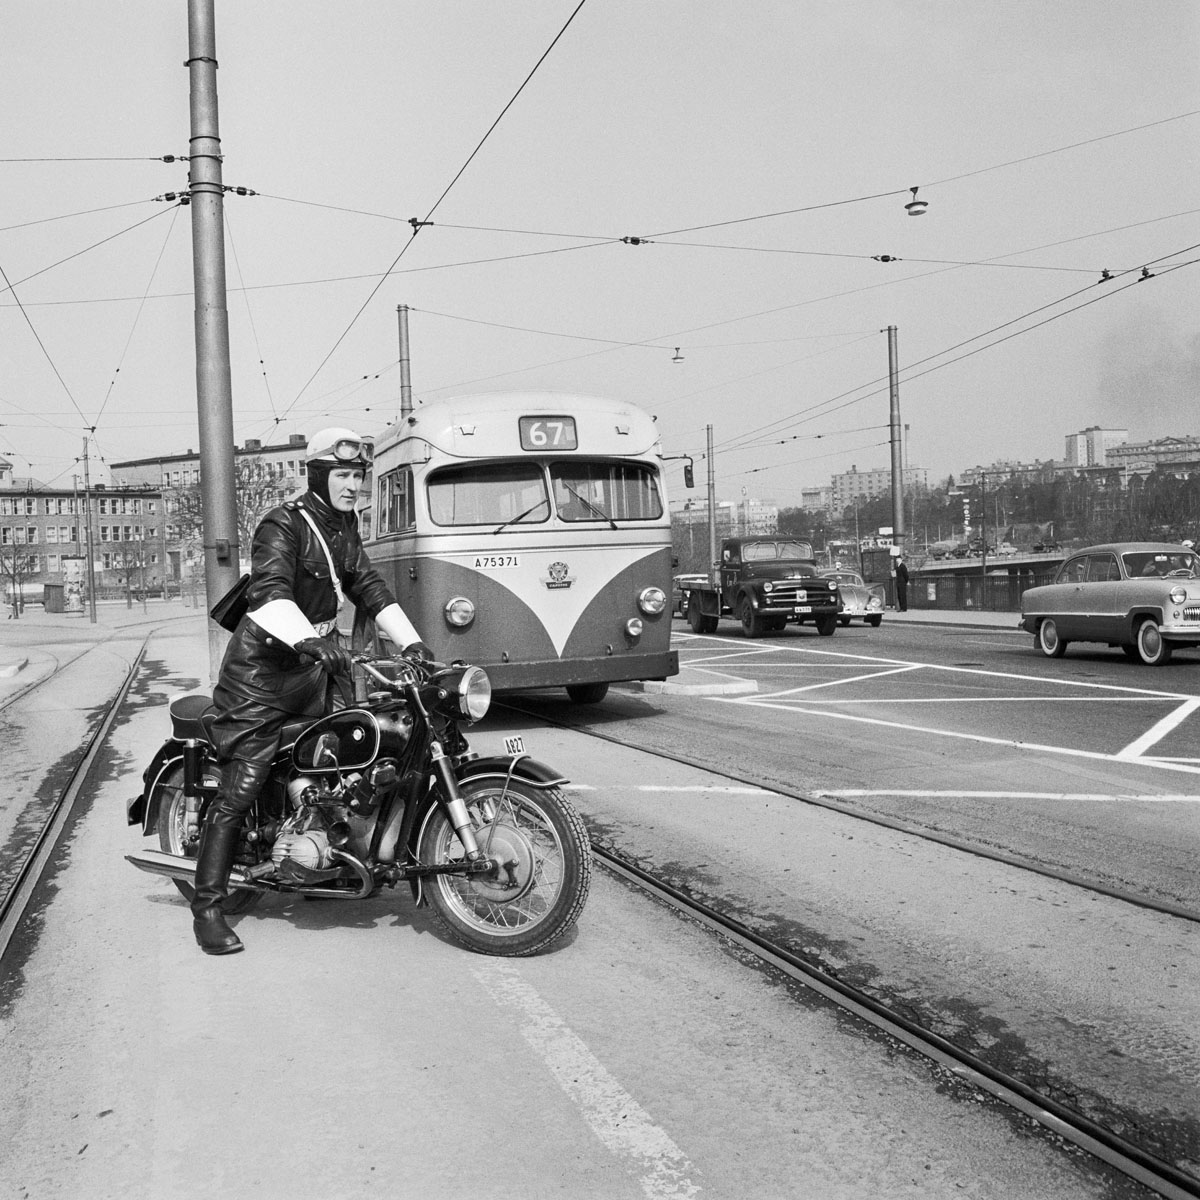 File:Police om motorcycle monitor traffic in Stockholm 1959.jpg